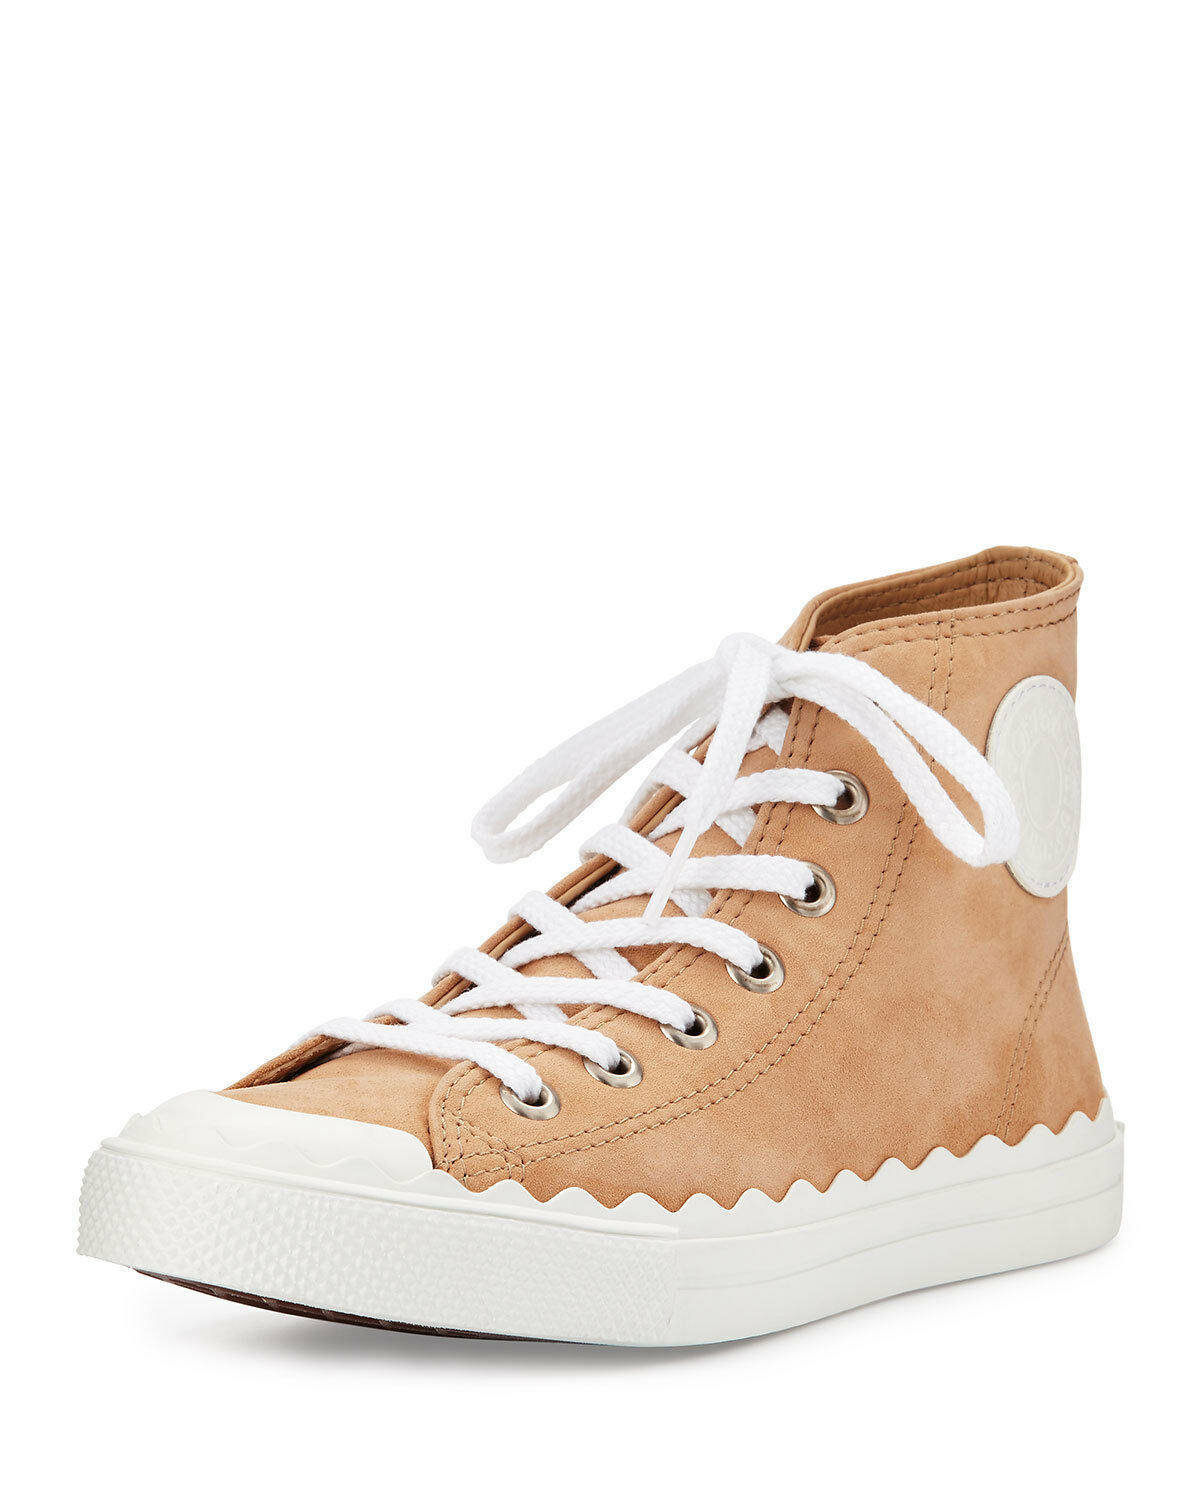 Chloé Kyle Suede 695 High-top Turnschuhe Stiefelie Flats  695 Suede 613e42